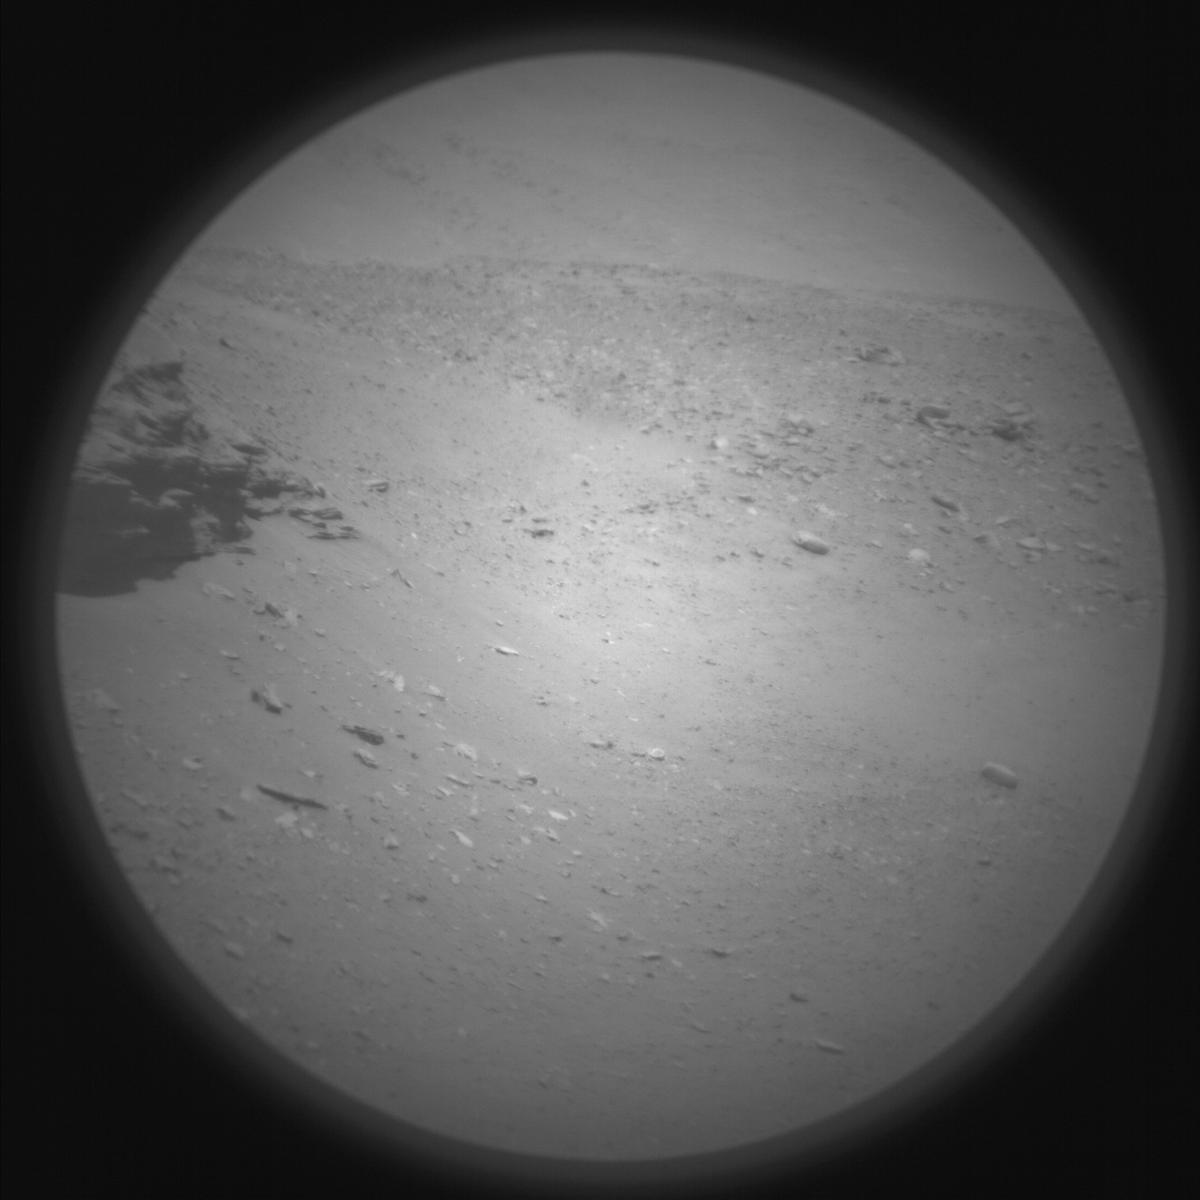 This image was taken by SUPERCAM_RMI onboard NASA's Mars rover Perseverance on Sol 54